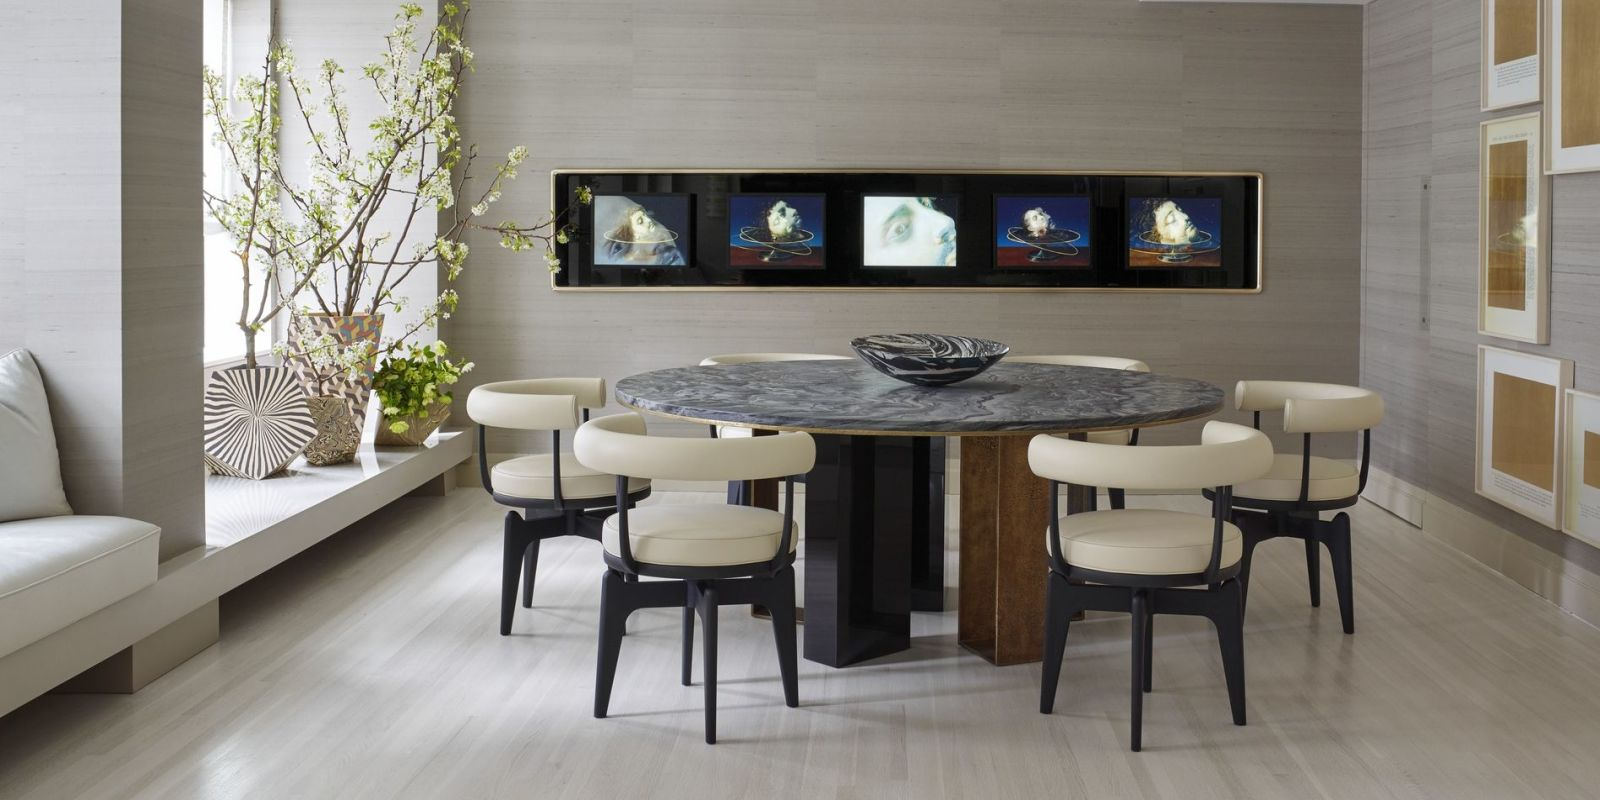 25 modern dining room decorating ideas contemporary for Modern dining room ideas